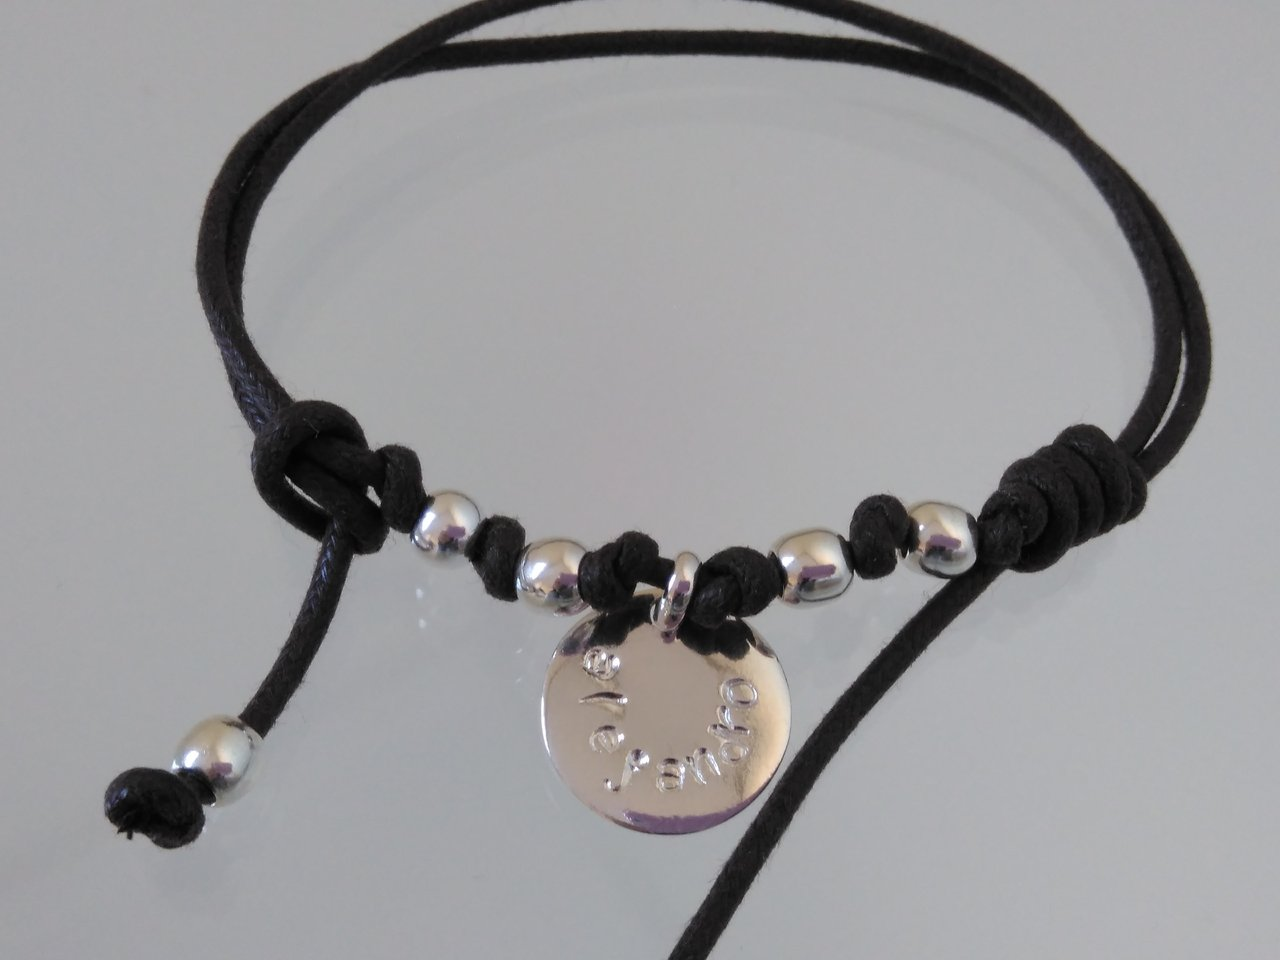 SILVER BRACELET WITH ONE MEDAL